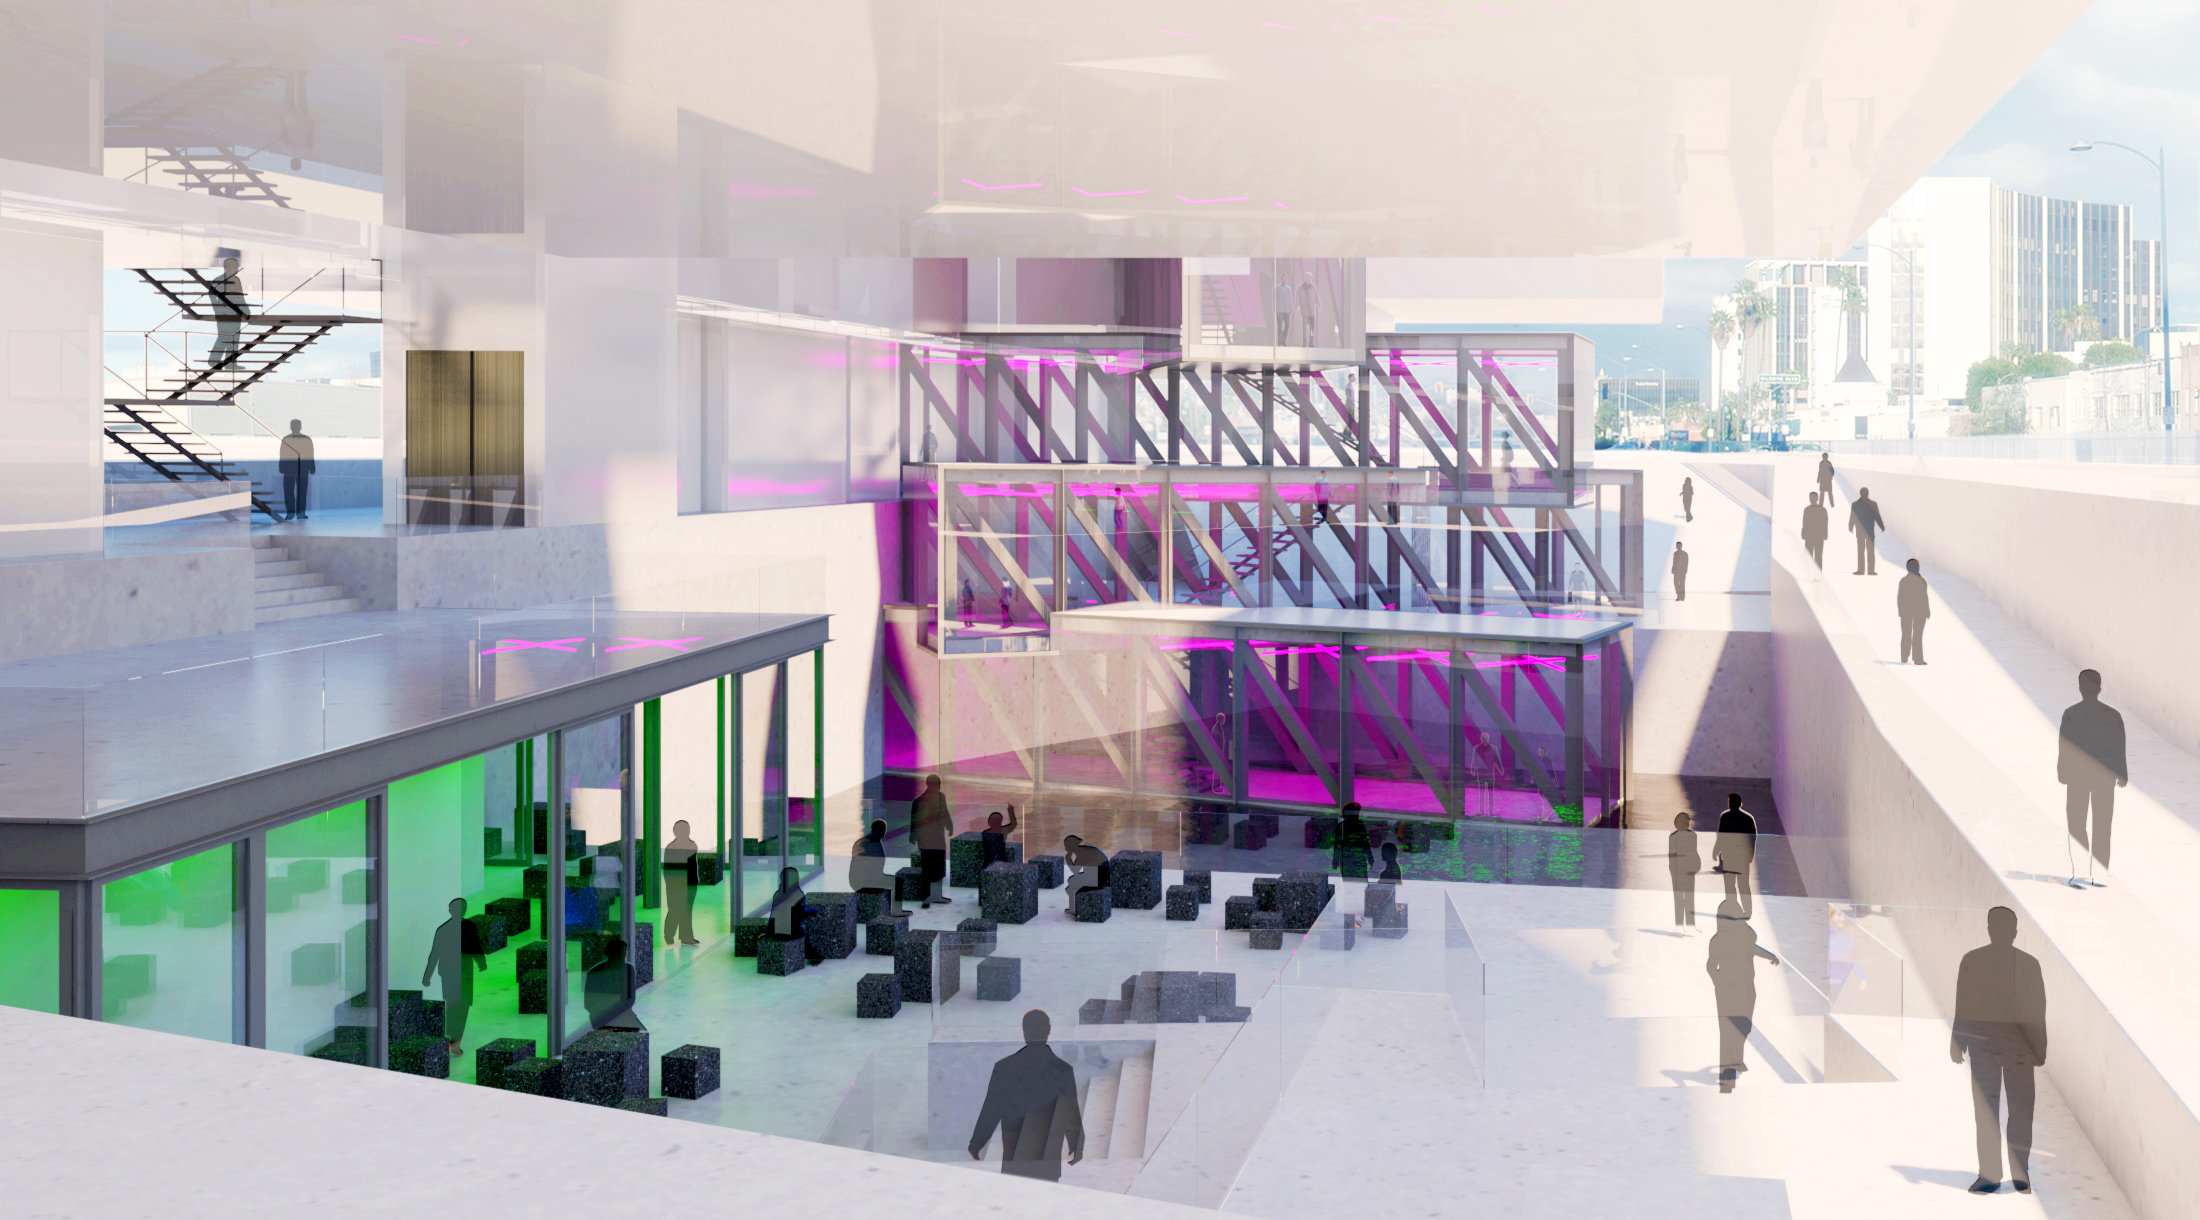 Rendering showing the cafe, public plaza, and suspended galleries.